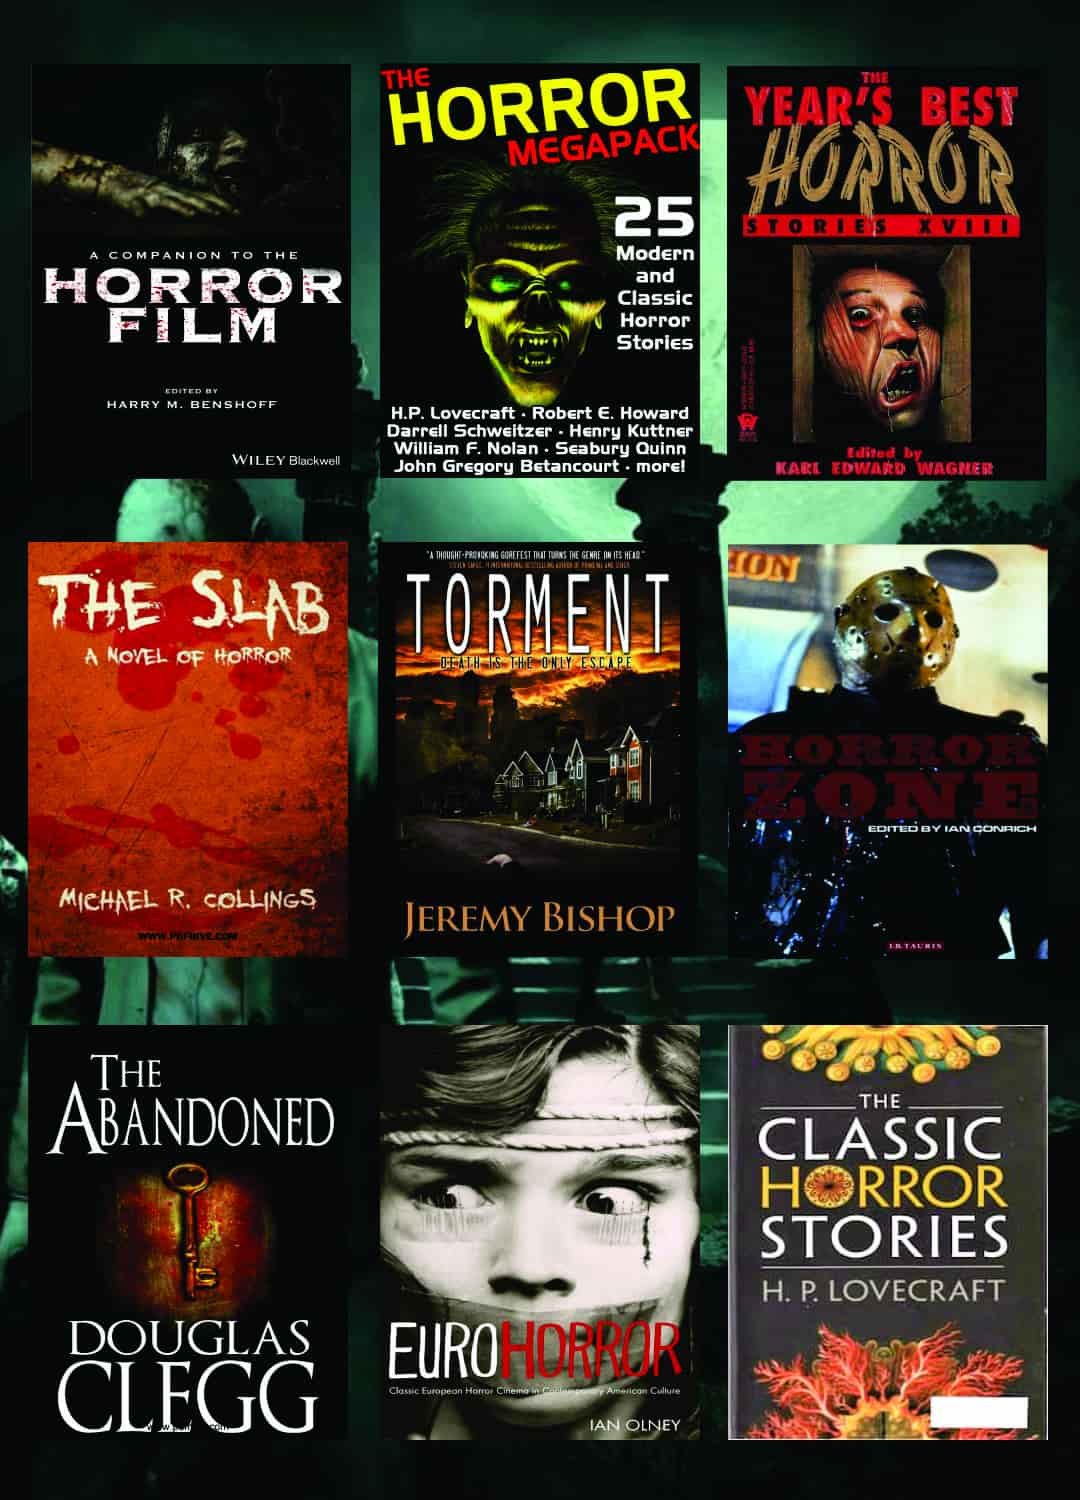 best horror novels 2019, best horror novels 2020, best horror novels of all time, classic horror novels, horror visual novels, horror graphic novels, horror books, best horror books, best horror books 2019